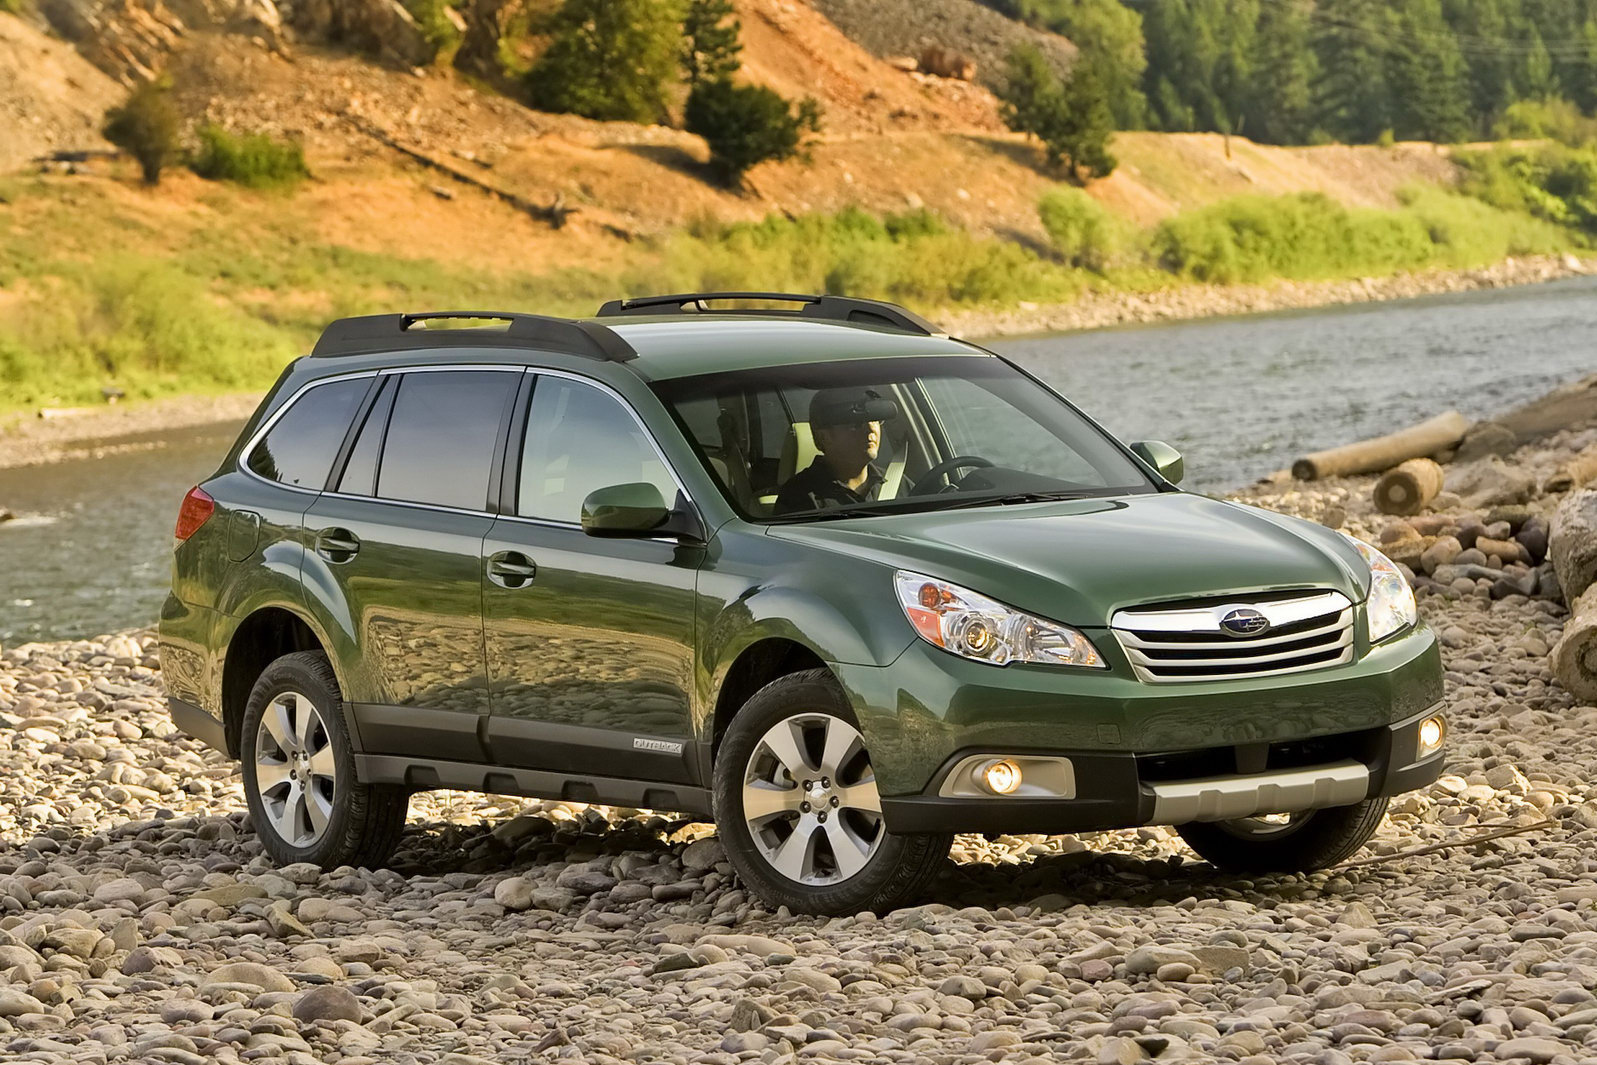 Minor updates for 2011 subaru legacy sedan and outback blocking ads can be devastating to sites you love and can result in people losing their jobs and negatively affect the quality of content vanachro Images